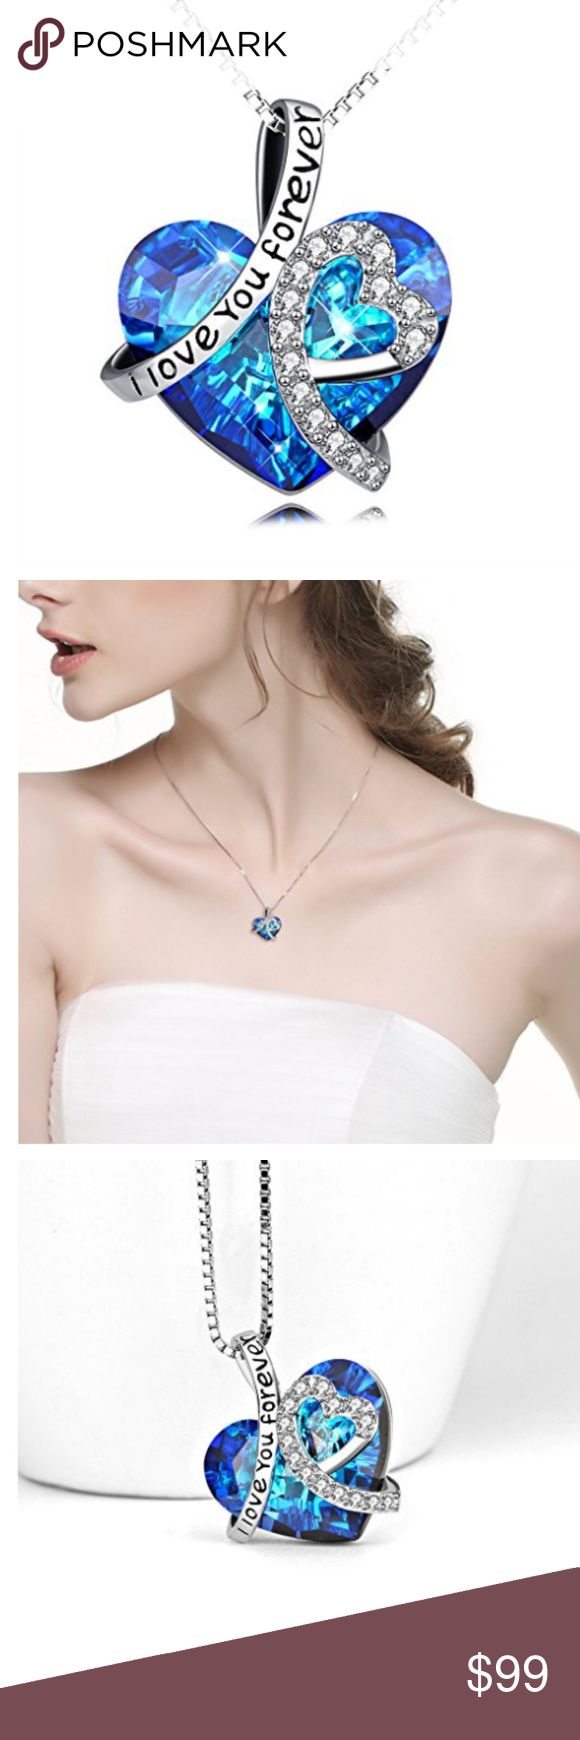 """🔥Heart Pendant Necklace with Swarovski Crystals Sterling Silver """"I Love You Forever"""" engraved Heart Pendant Necklace with Swarovski Crystals HIGH-QUALITY: Hypoallergenic 925 sterling silver,cubic zirconia with bermuda blue heart crystals from Swarovski®  Pendant size:0.85 inch*0.74 inch(21.7*18.9 mm), Chain length:18 inch(box chain)   📌SHIPPING 📦: Please allow 1-2 business days. I got to pick it up from my business.  📌BUNDLE & SAVE: 10% discounted on 3+ items when BUNDLE. + FREE SHIPPING…"""